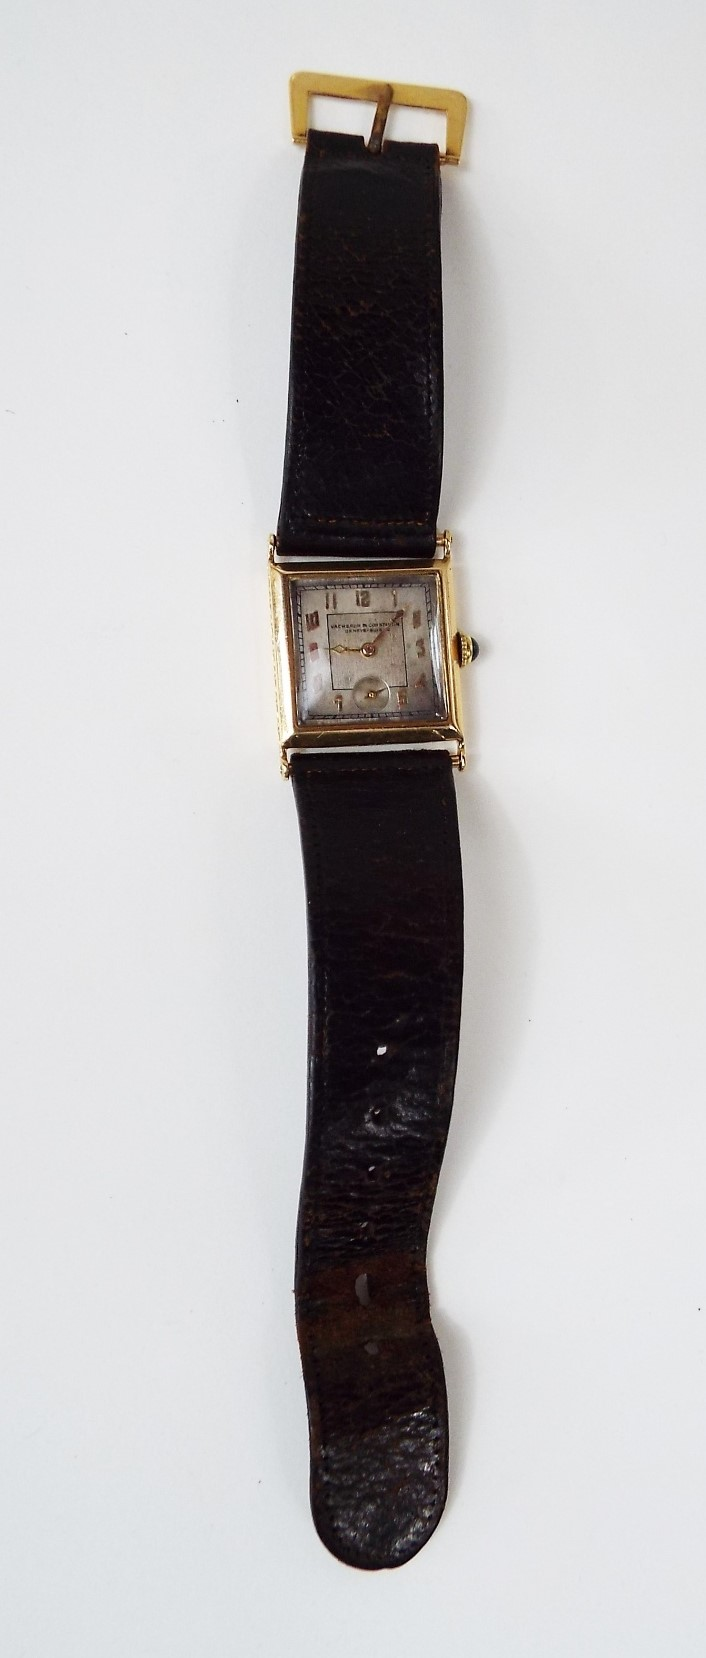 Lot 367 - Good quality art deco 1920s Vacheron Constantin gent's 18ct dress watch, the silvered dial with gilt